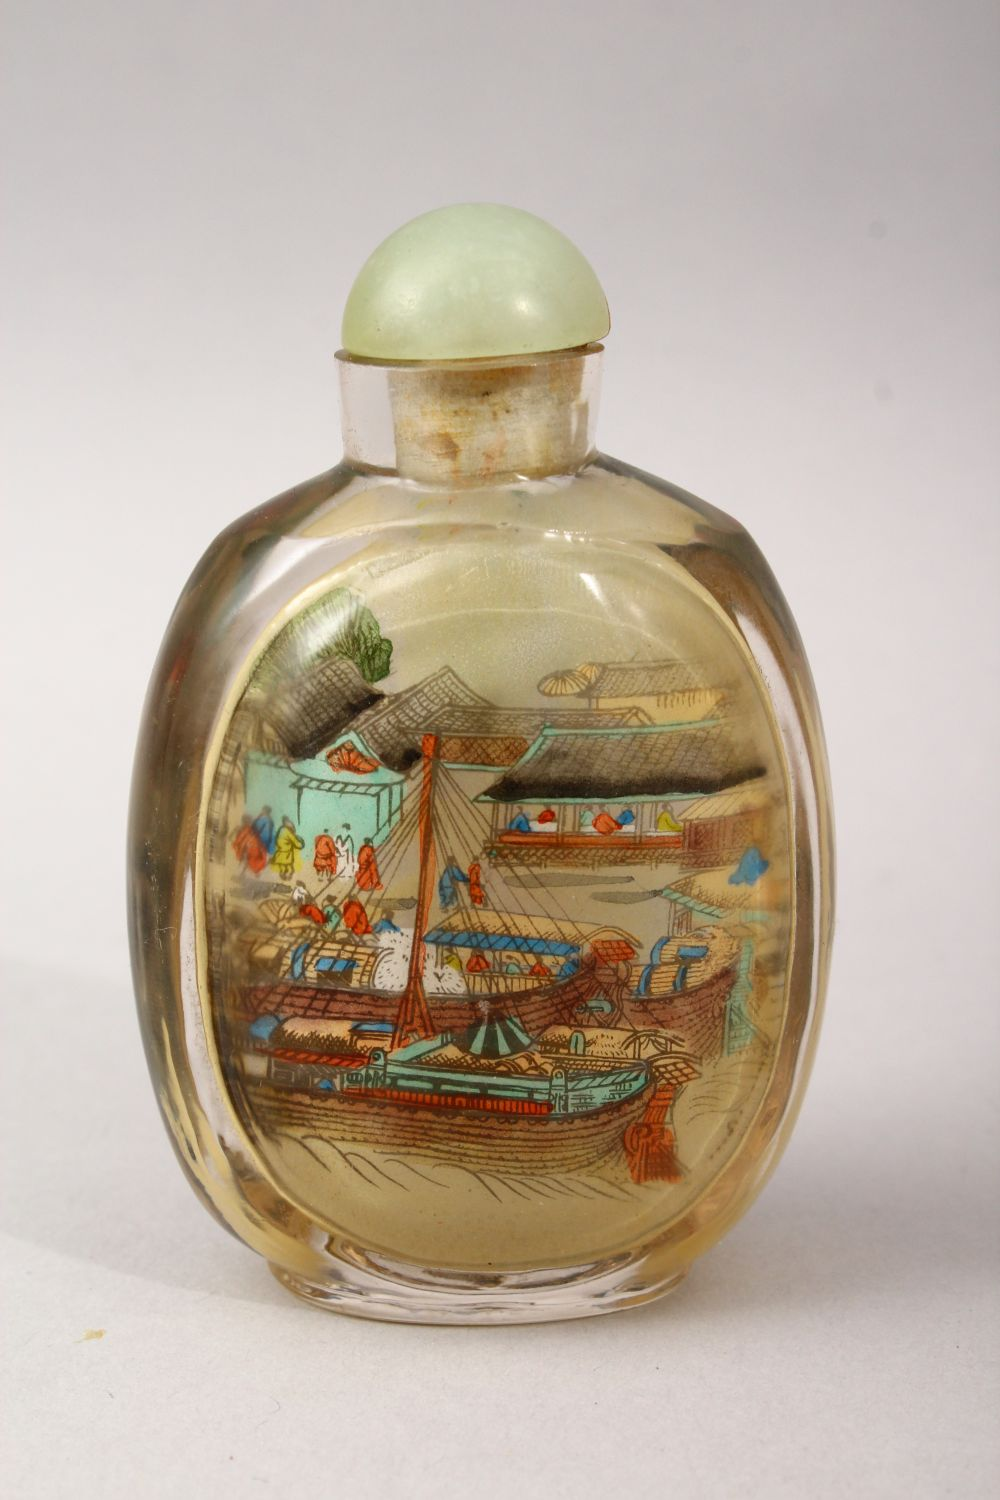 A GOOD 19TH / 20TH CENTURY CHINESE REVERSE PAINTED GLASS SNUFF BOTTLE, depicting scenes of figures - Image 2 of 3